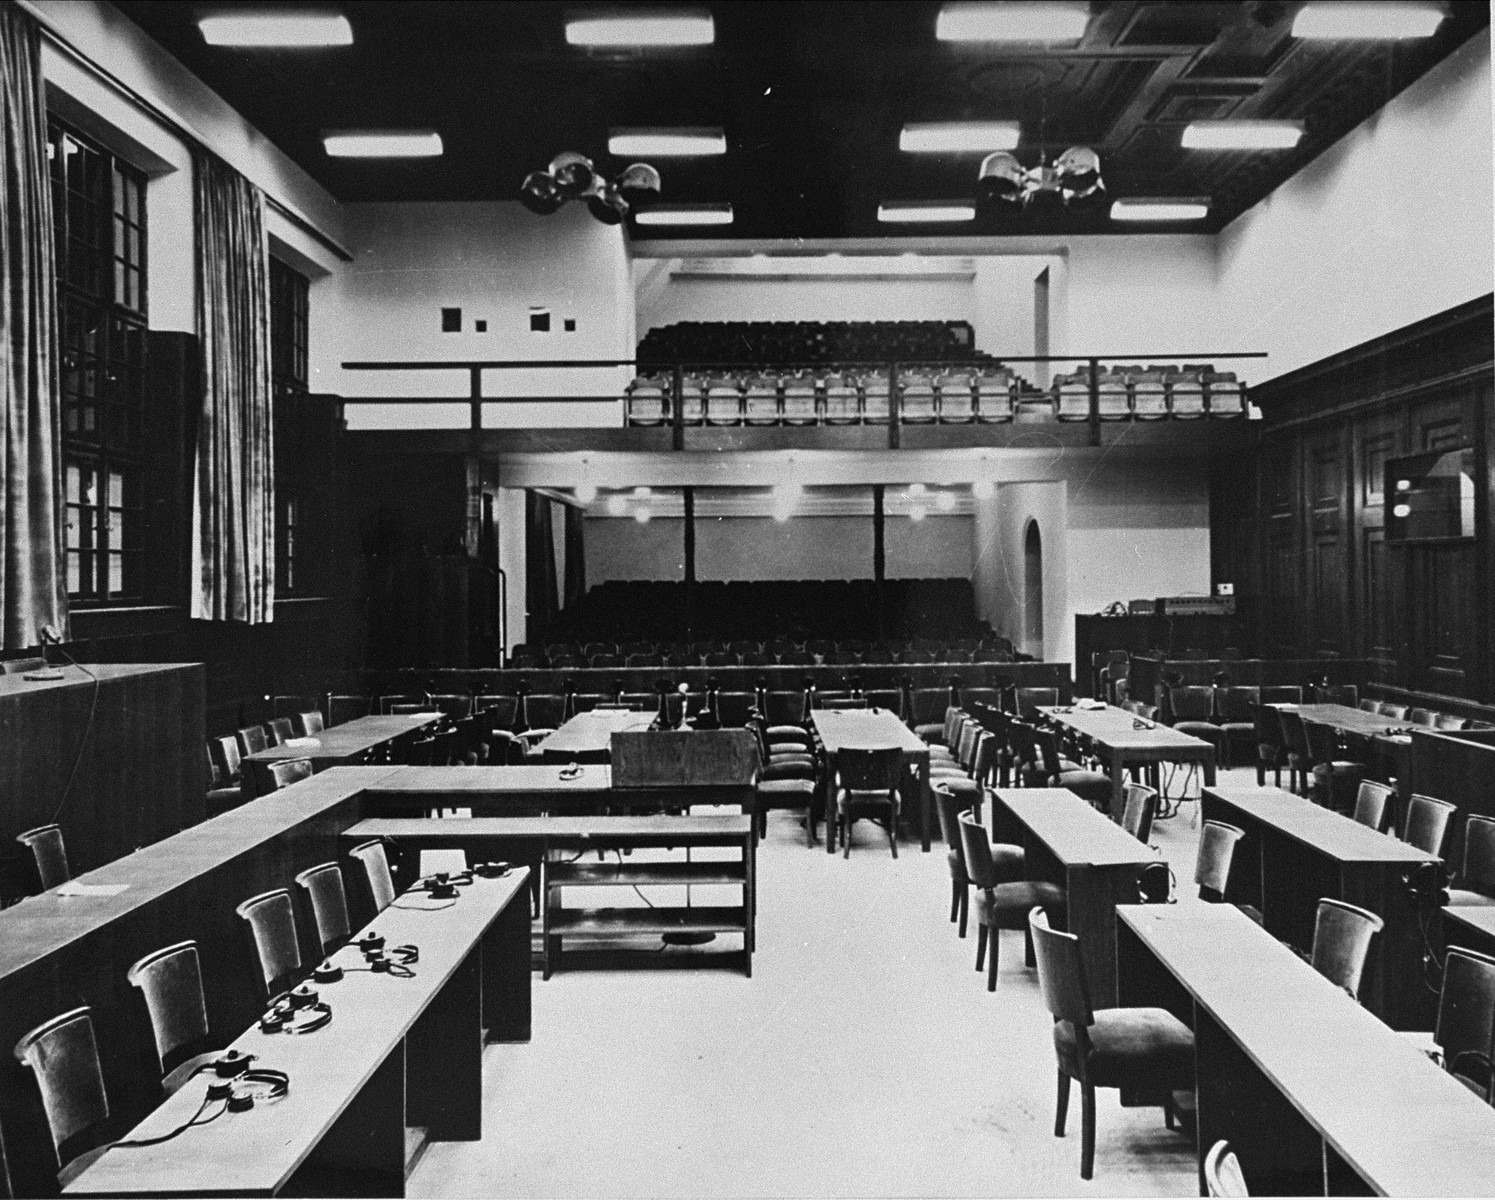 The newly-remodeled courtroom where the International Military Tribunal trial of war criminals will be held.